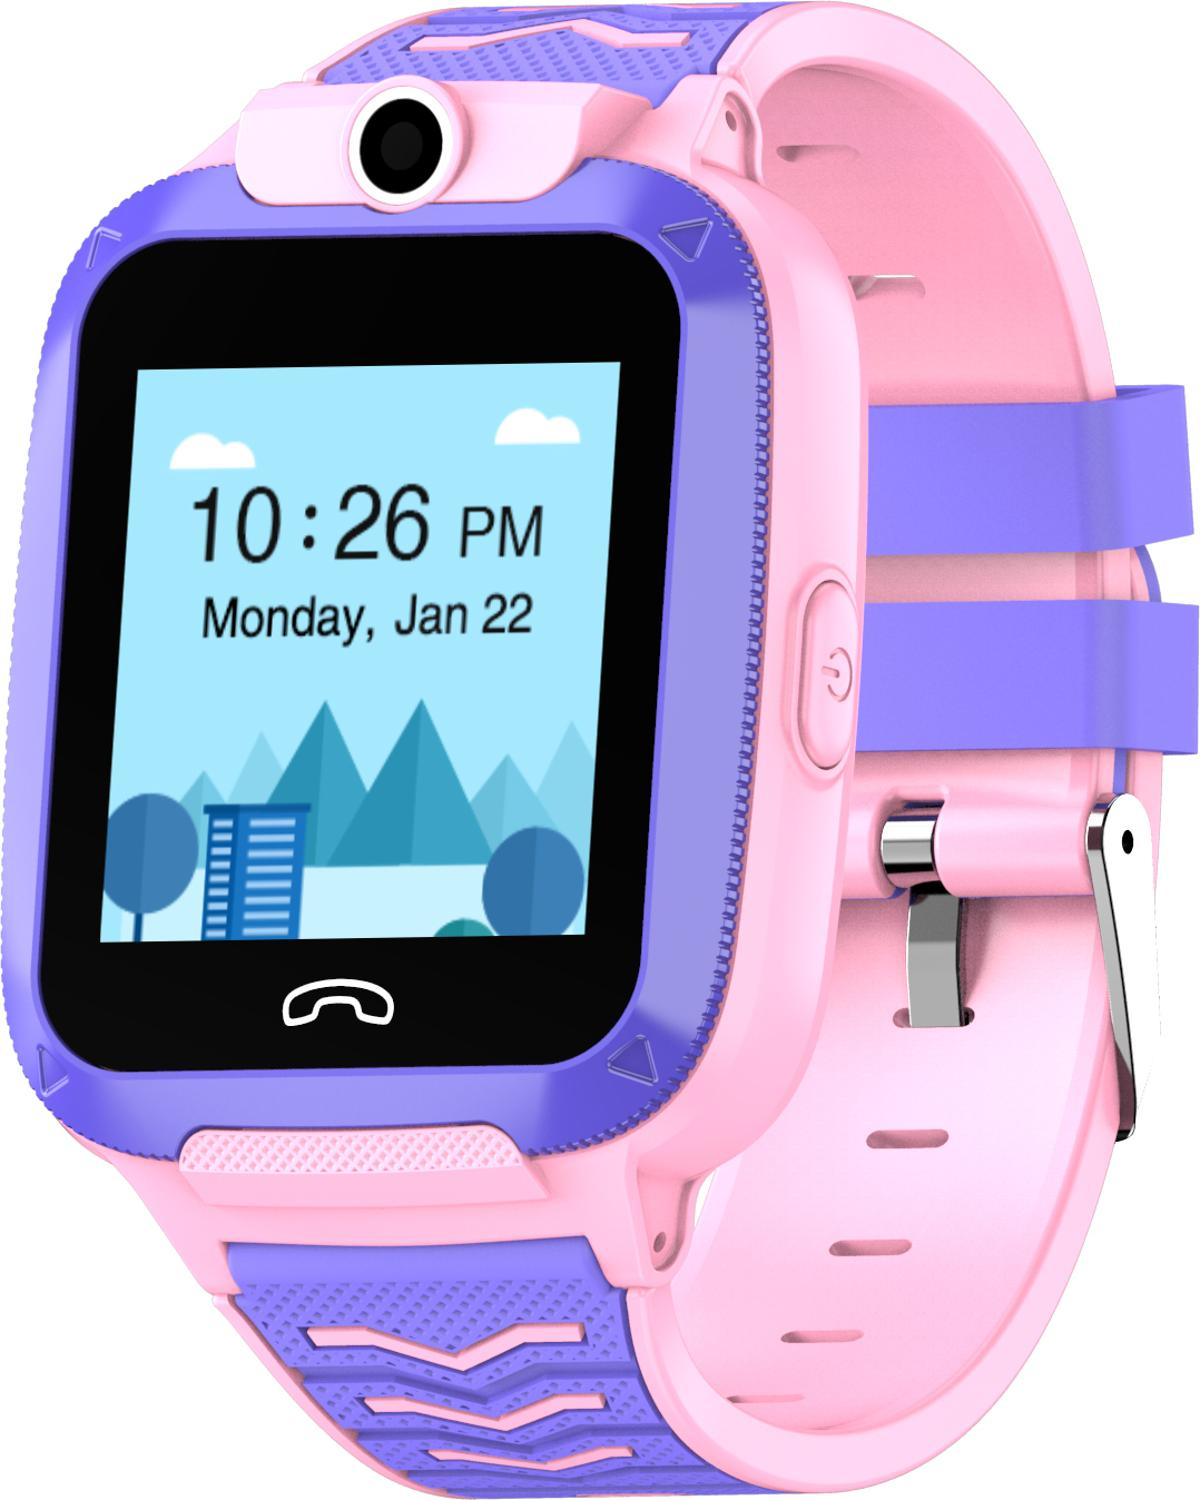 2019 Latest Waterproof Smart <font><b>Watch</b></font> <font><b>4G</b></font> GPS <font><b>Watch</b></font> for kids image